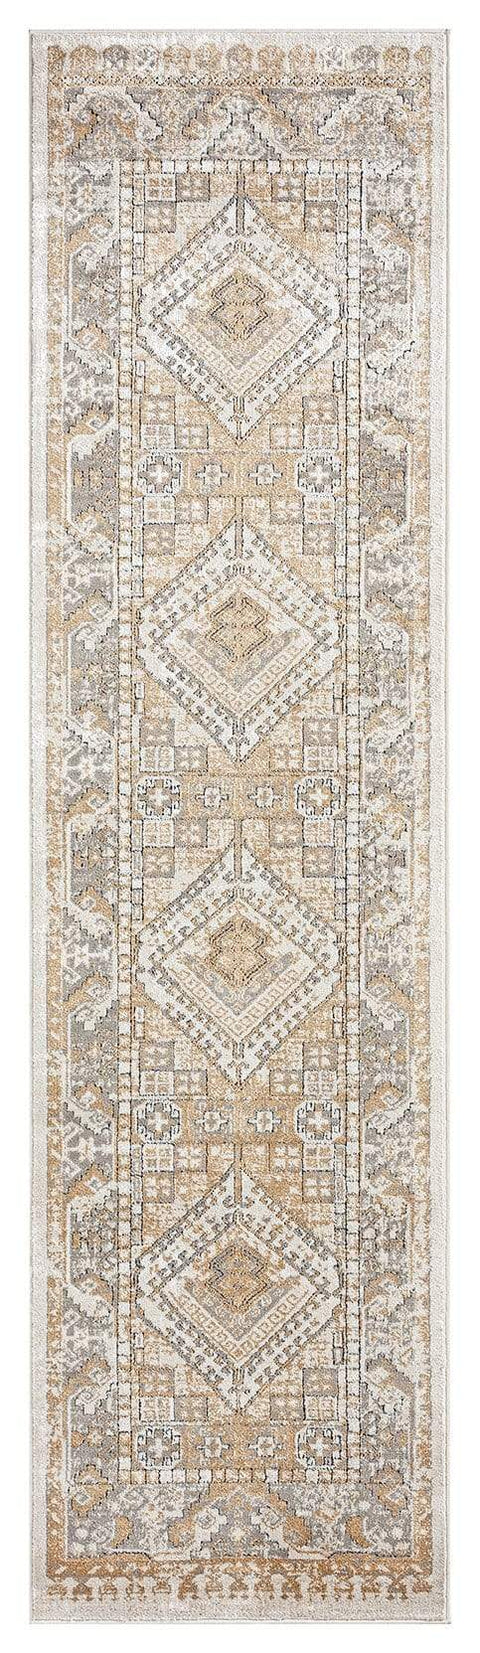 Tupelo Beige and Grey Tribal Medallion Runner Rug